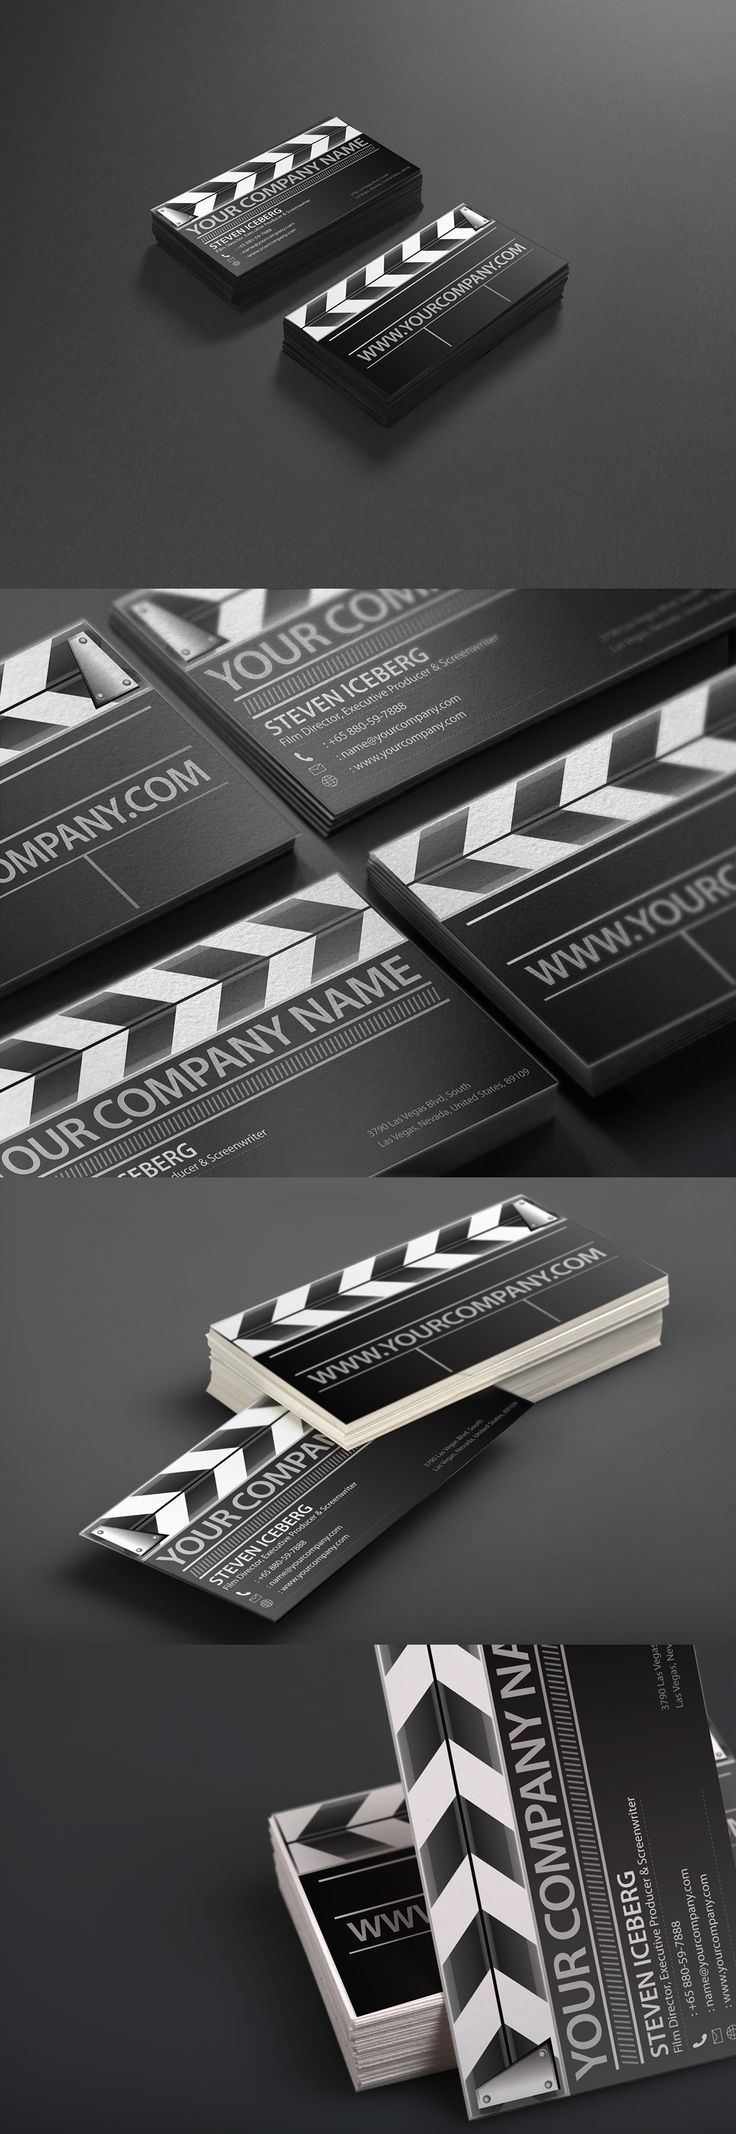 Your no#1 Film director creative business card to catch your clients attention? To make them remember and outshine from the rest of the Boring cards in their holder? You get this right today!  This Film director business card is created from the concept of the slap board used during filming.  #businesscard #namecard #film #director #clapper